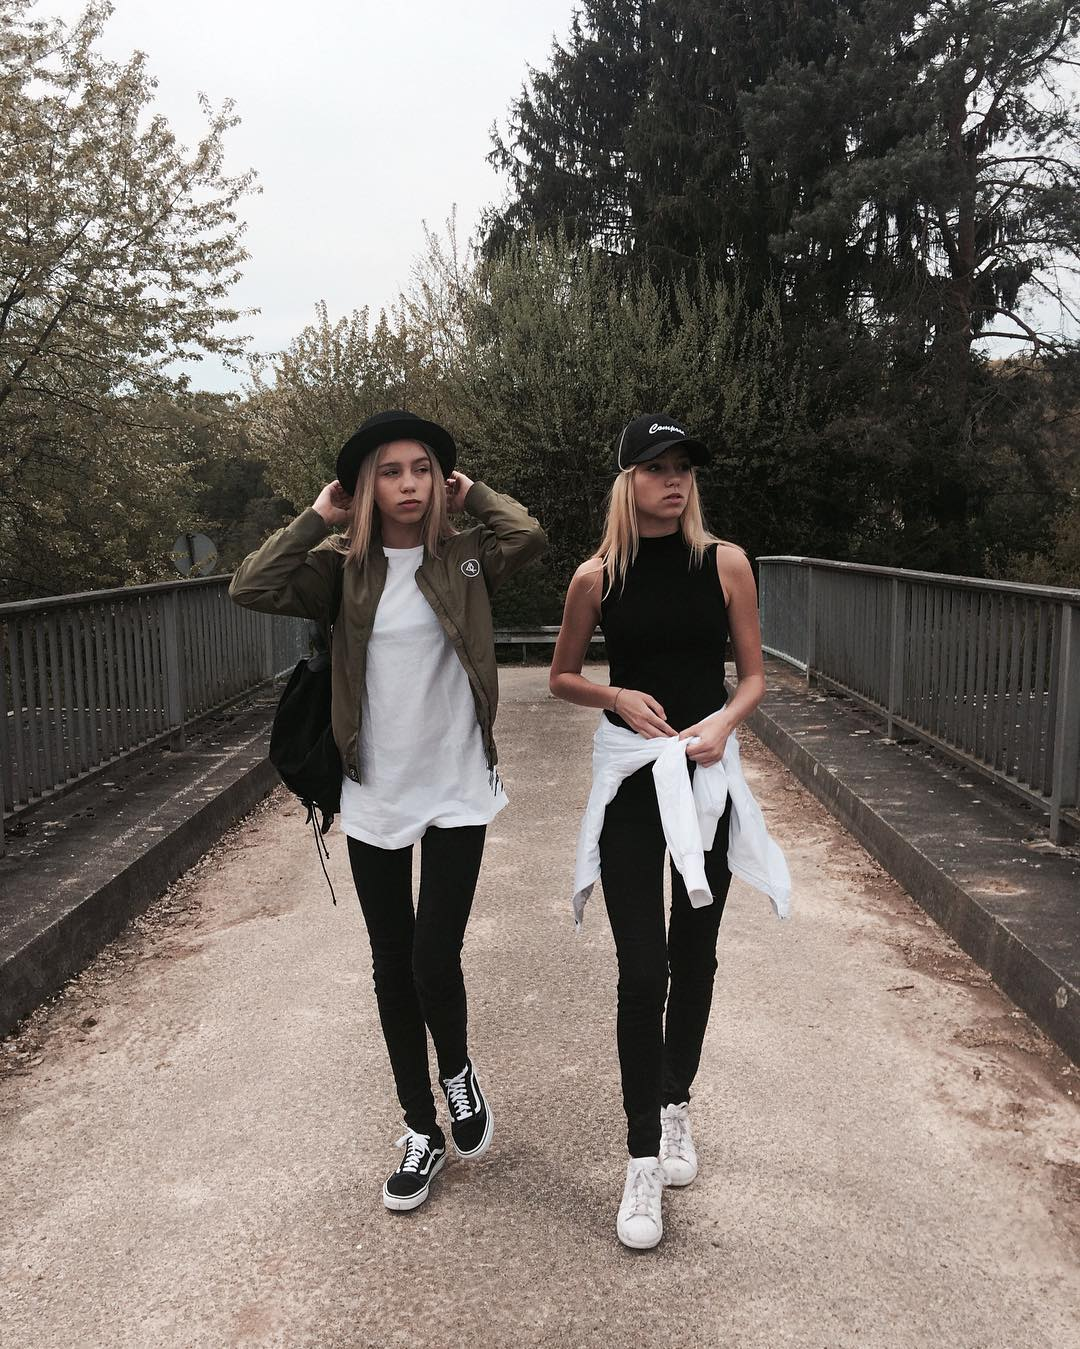 d3bff 13092208 227556744287892 1550477864 n Meet Lisa and Lena, the Teenage Twins Taking Over the Internet